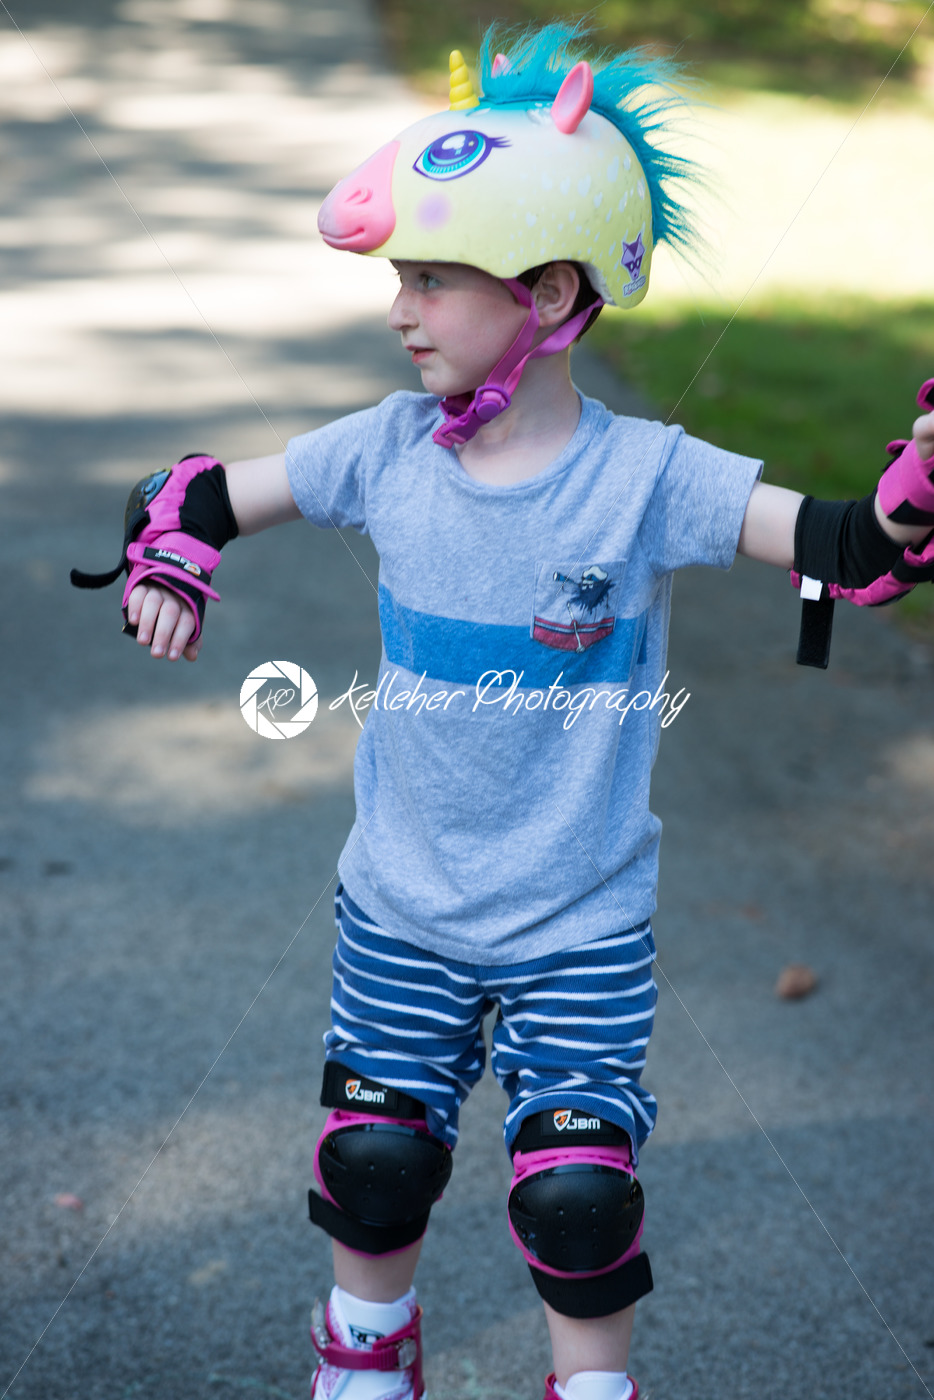 Young boy outside learning to riding on roller skates on driveway wearing protective helmet and elbow, wrist and knee pads - Kelleher Photography Store